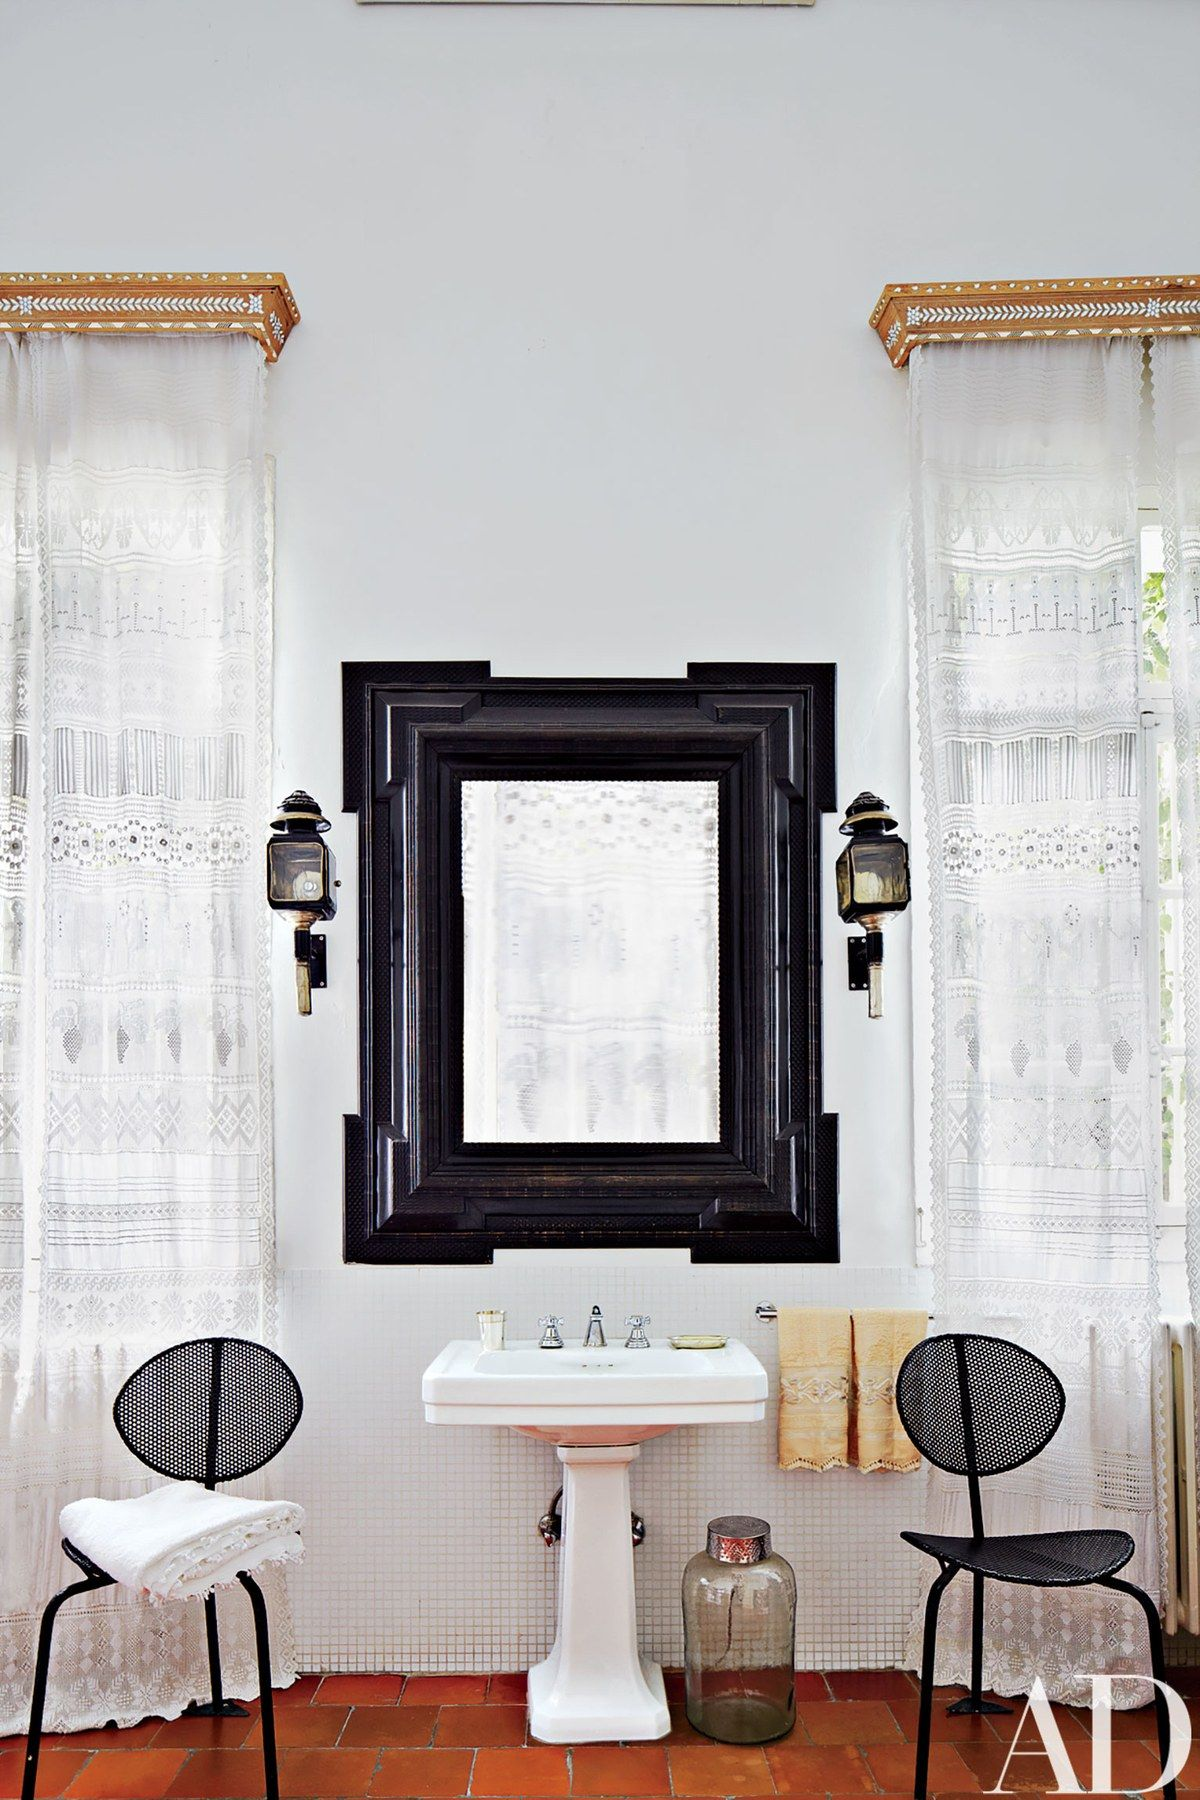 The master bath includes inlaidwood pelmets and embroideredlace